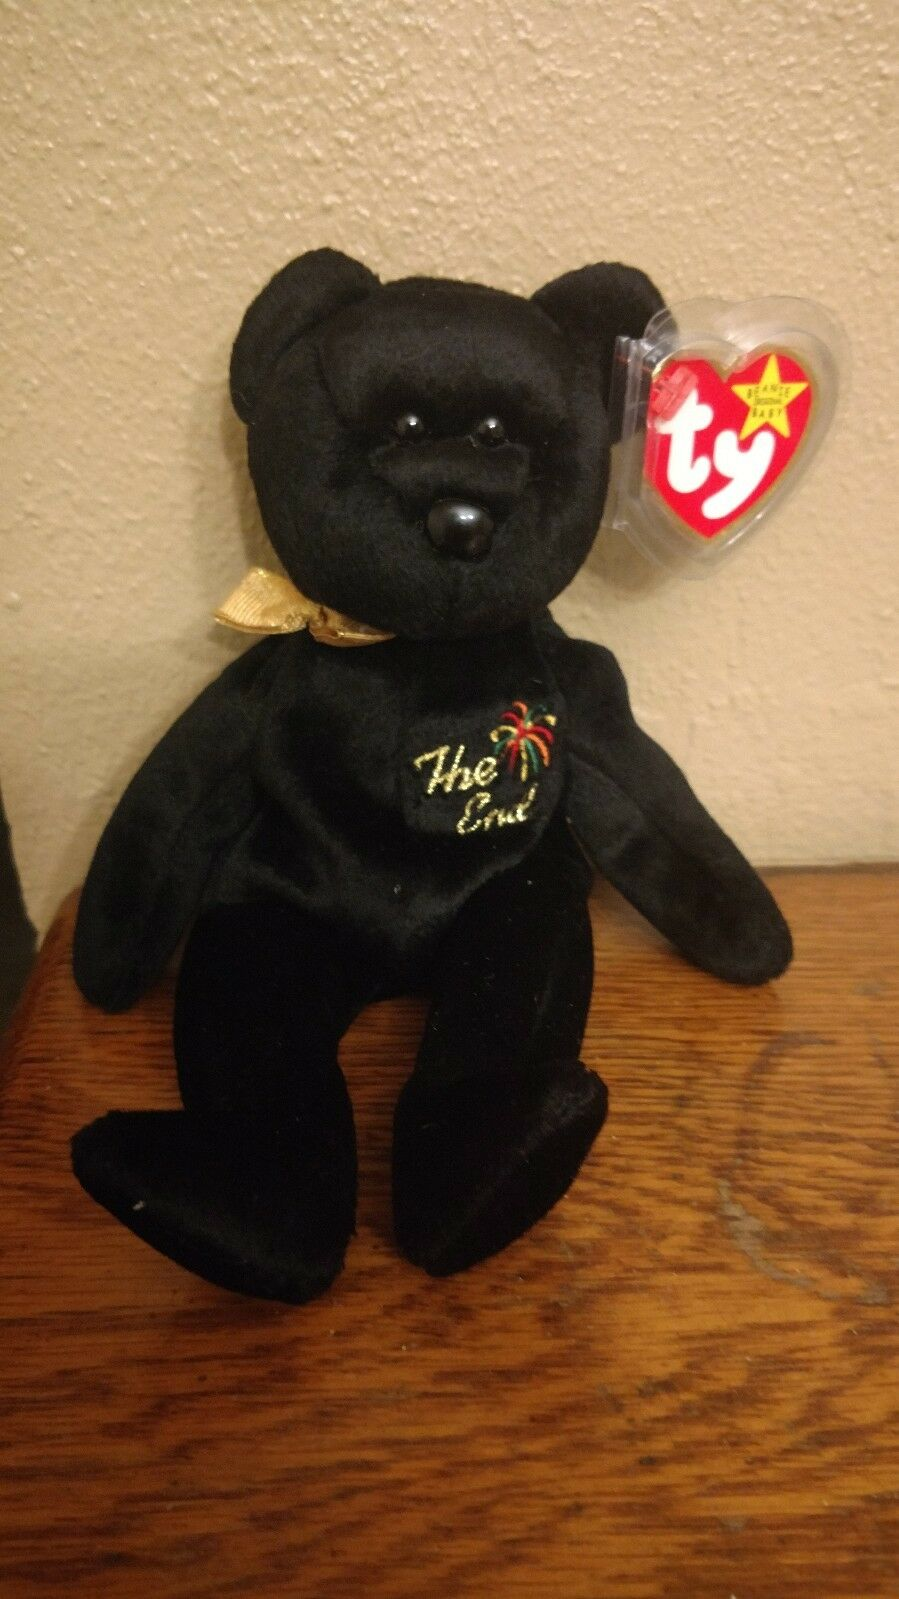 VERY RARE Ty Beanie Baby  The End  COLLECTIBLE w  ERRORS - Excellent Condition